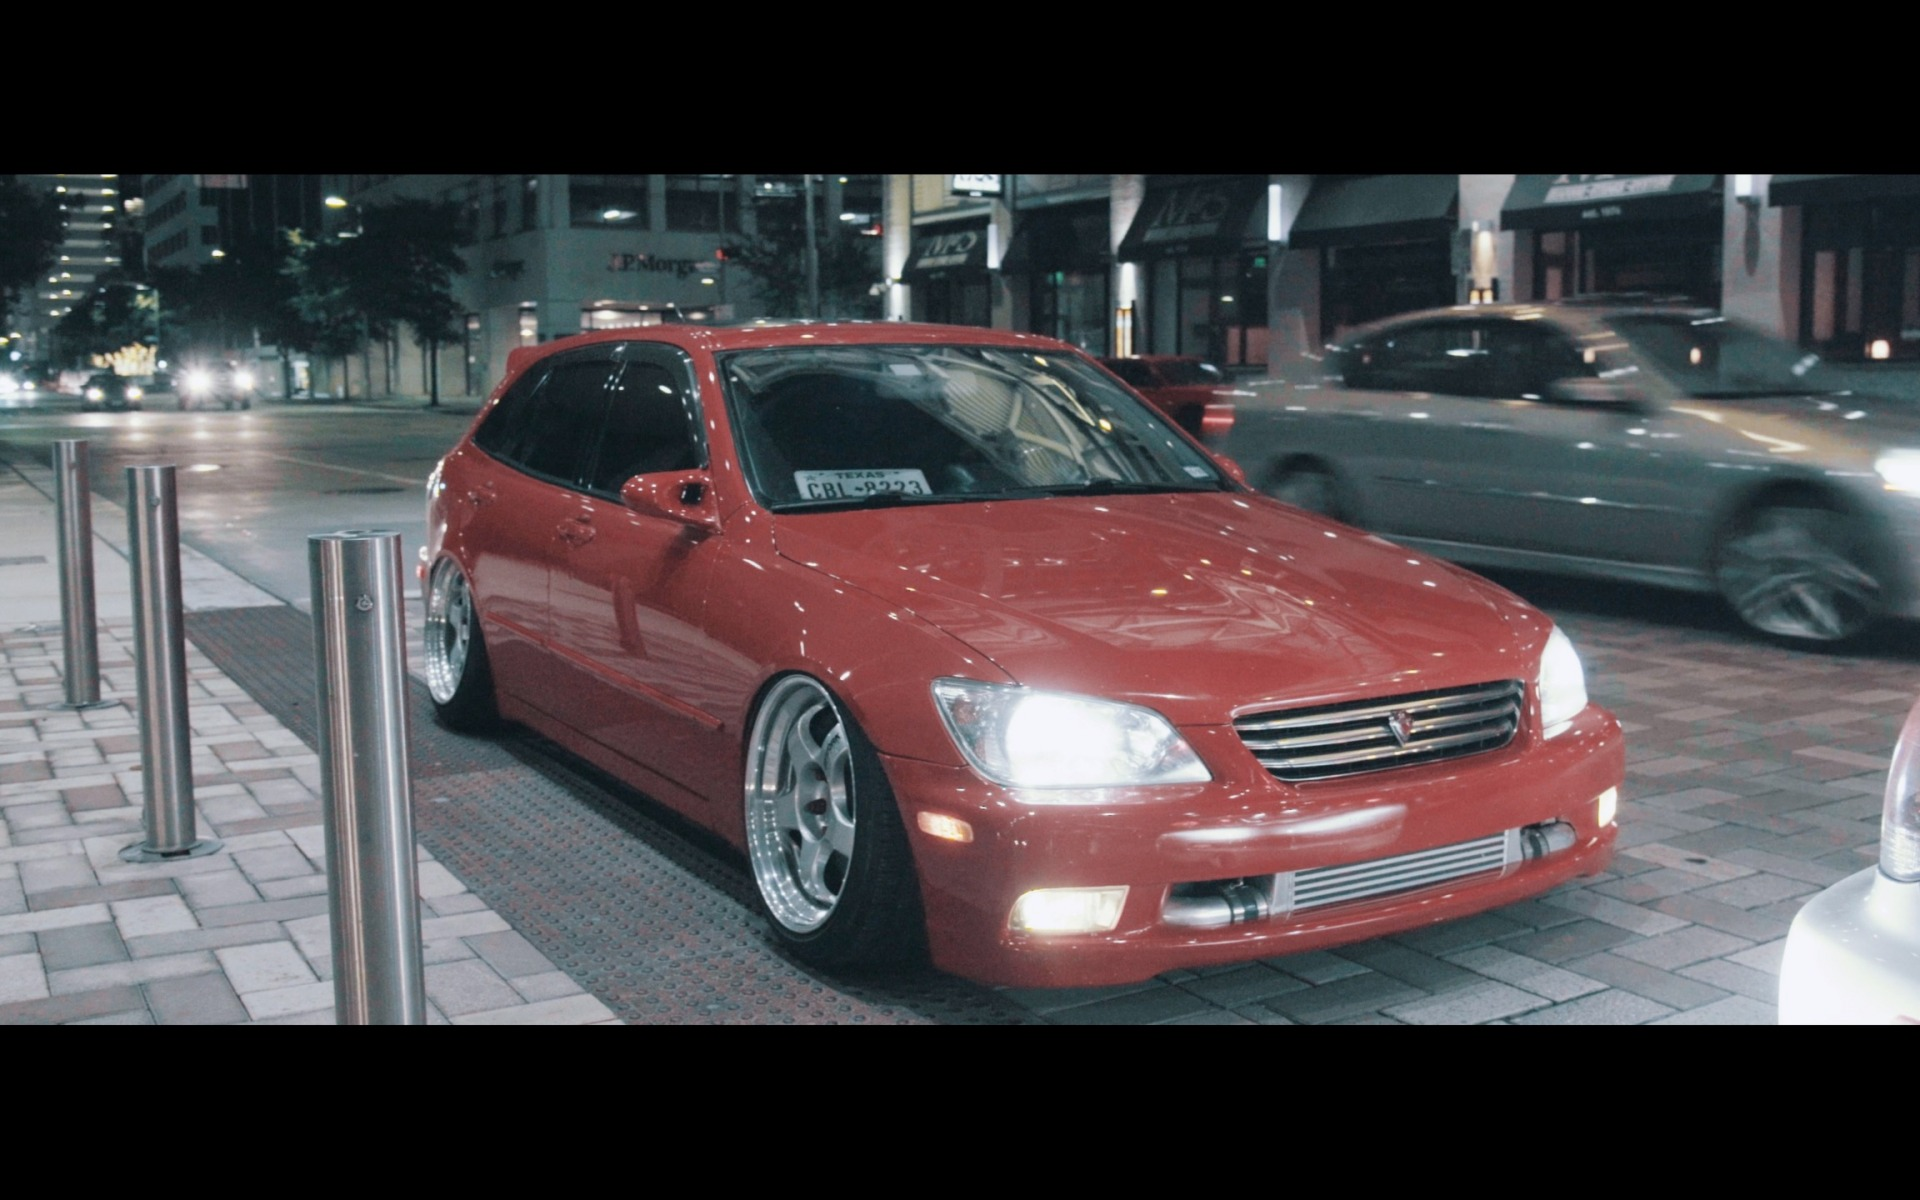 The Ricer Series - Episode 1 'FATPAT & MATTLIM'